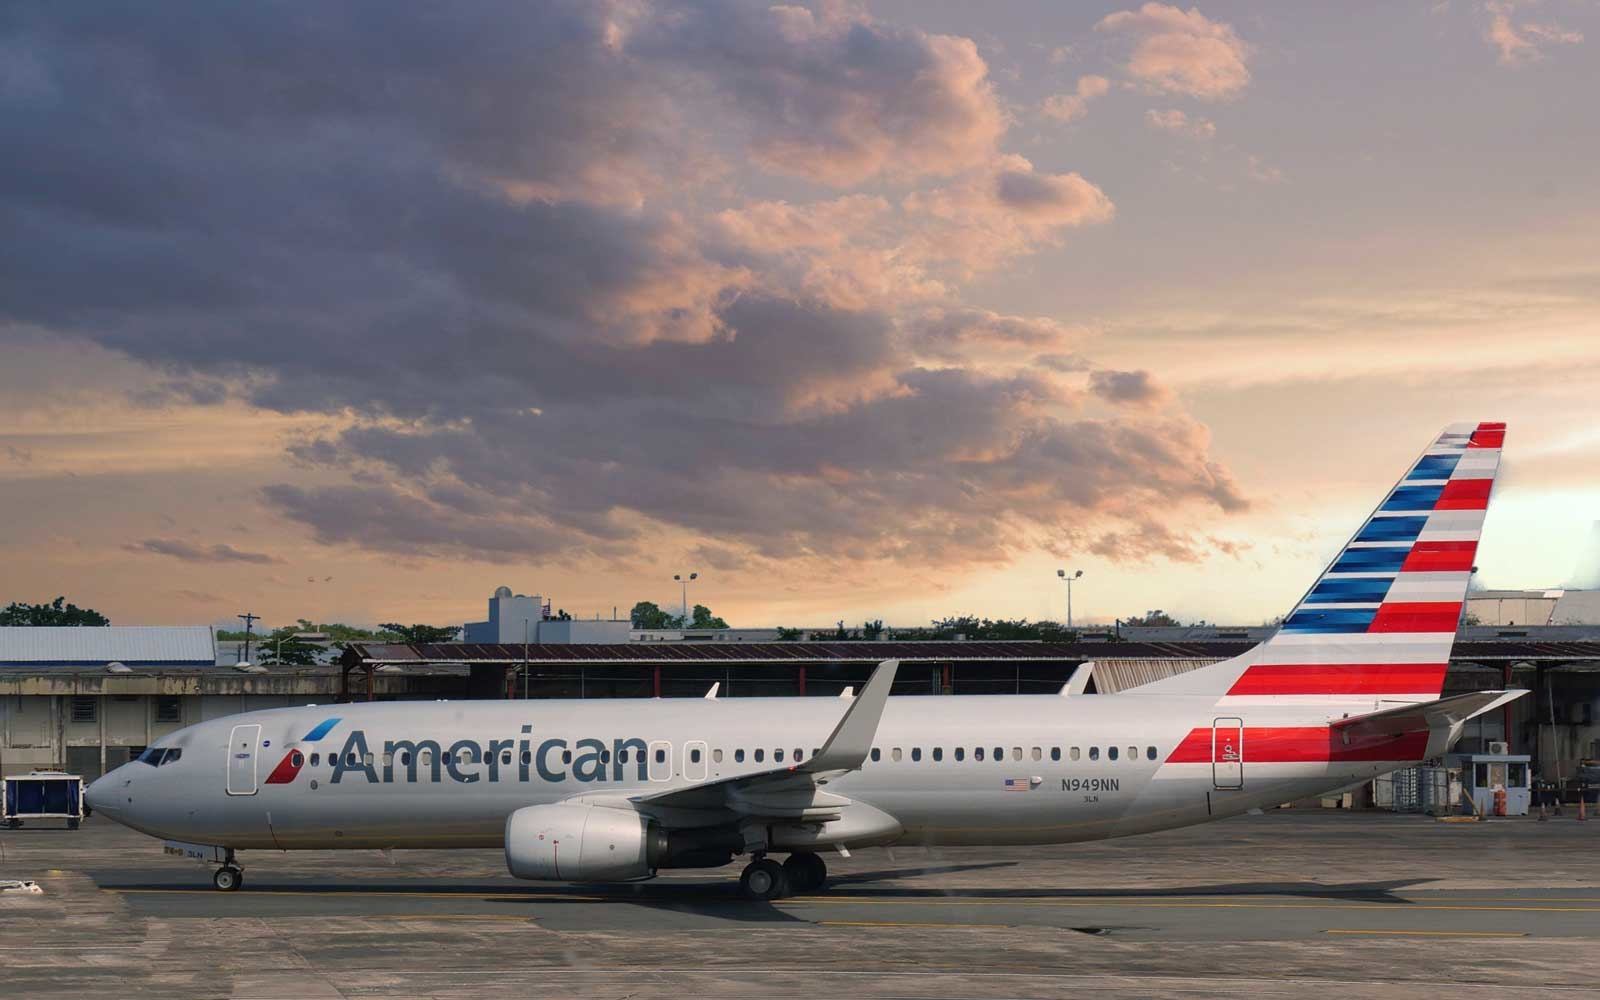 An American Airlines aircraft gets ready for takeoff at the Luis Muñoz Marín International Airport in Puerto Rico.